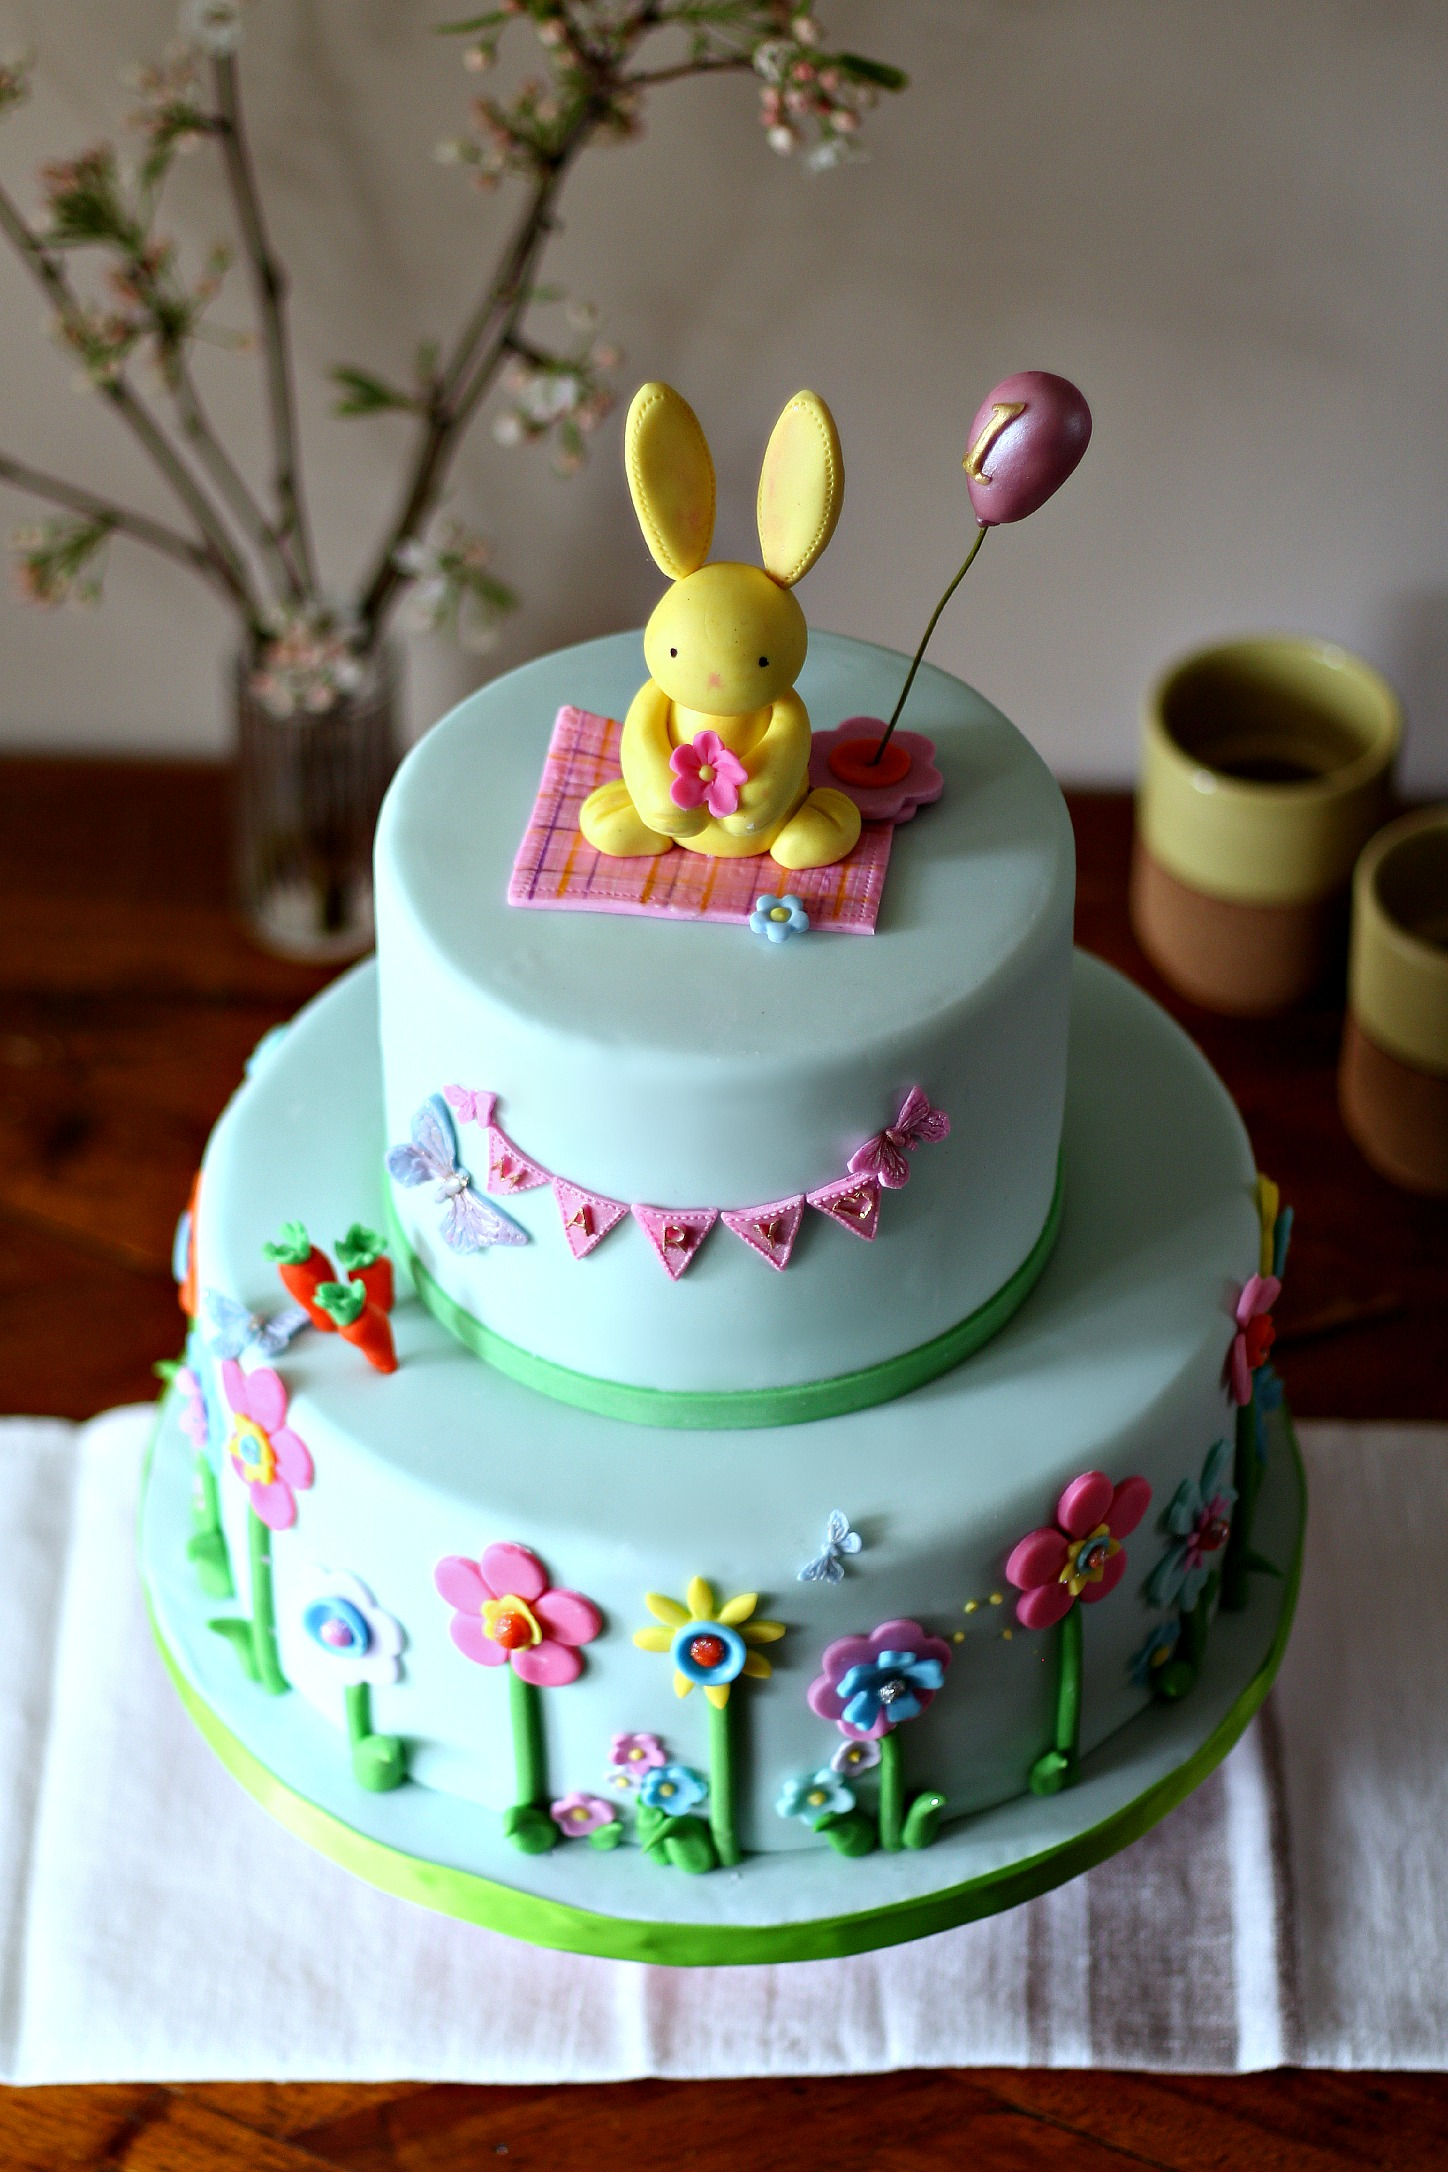 Bunny birthday cake flat sugar flowers pennant edit.jpg